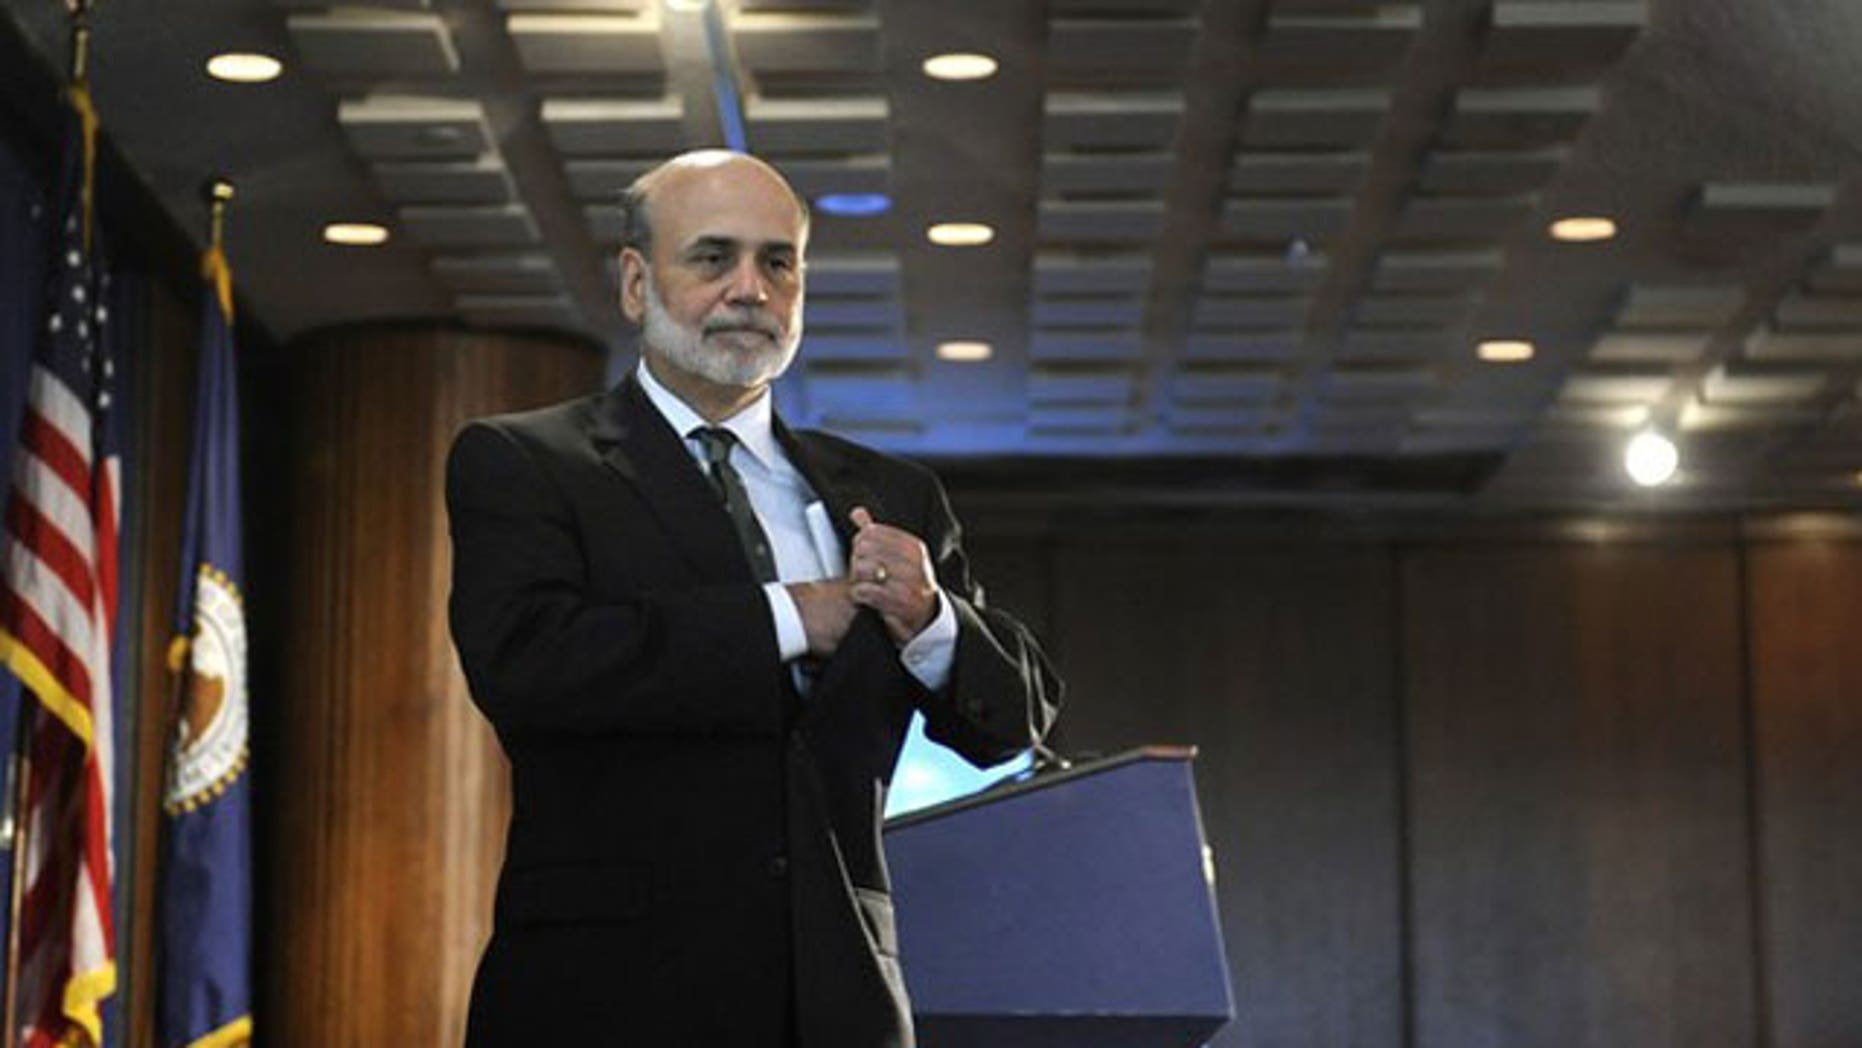 September 15: U.S. Federal Reserve Chairman Ben Bernanke departs the lectern after speaking at a conference on systemic risk, at the Federal Reserve in Washington.